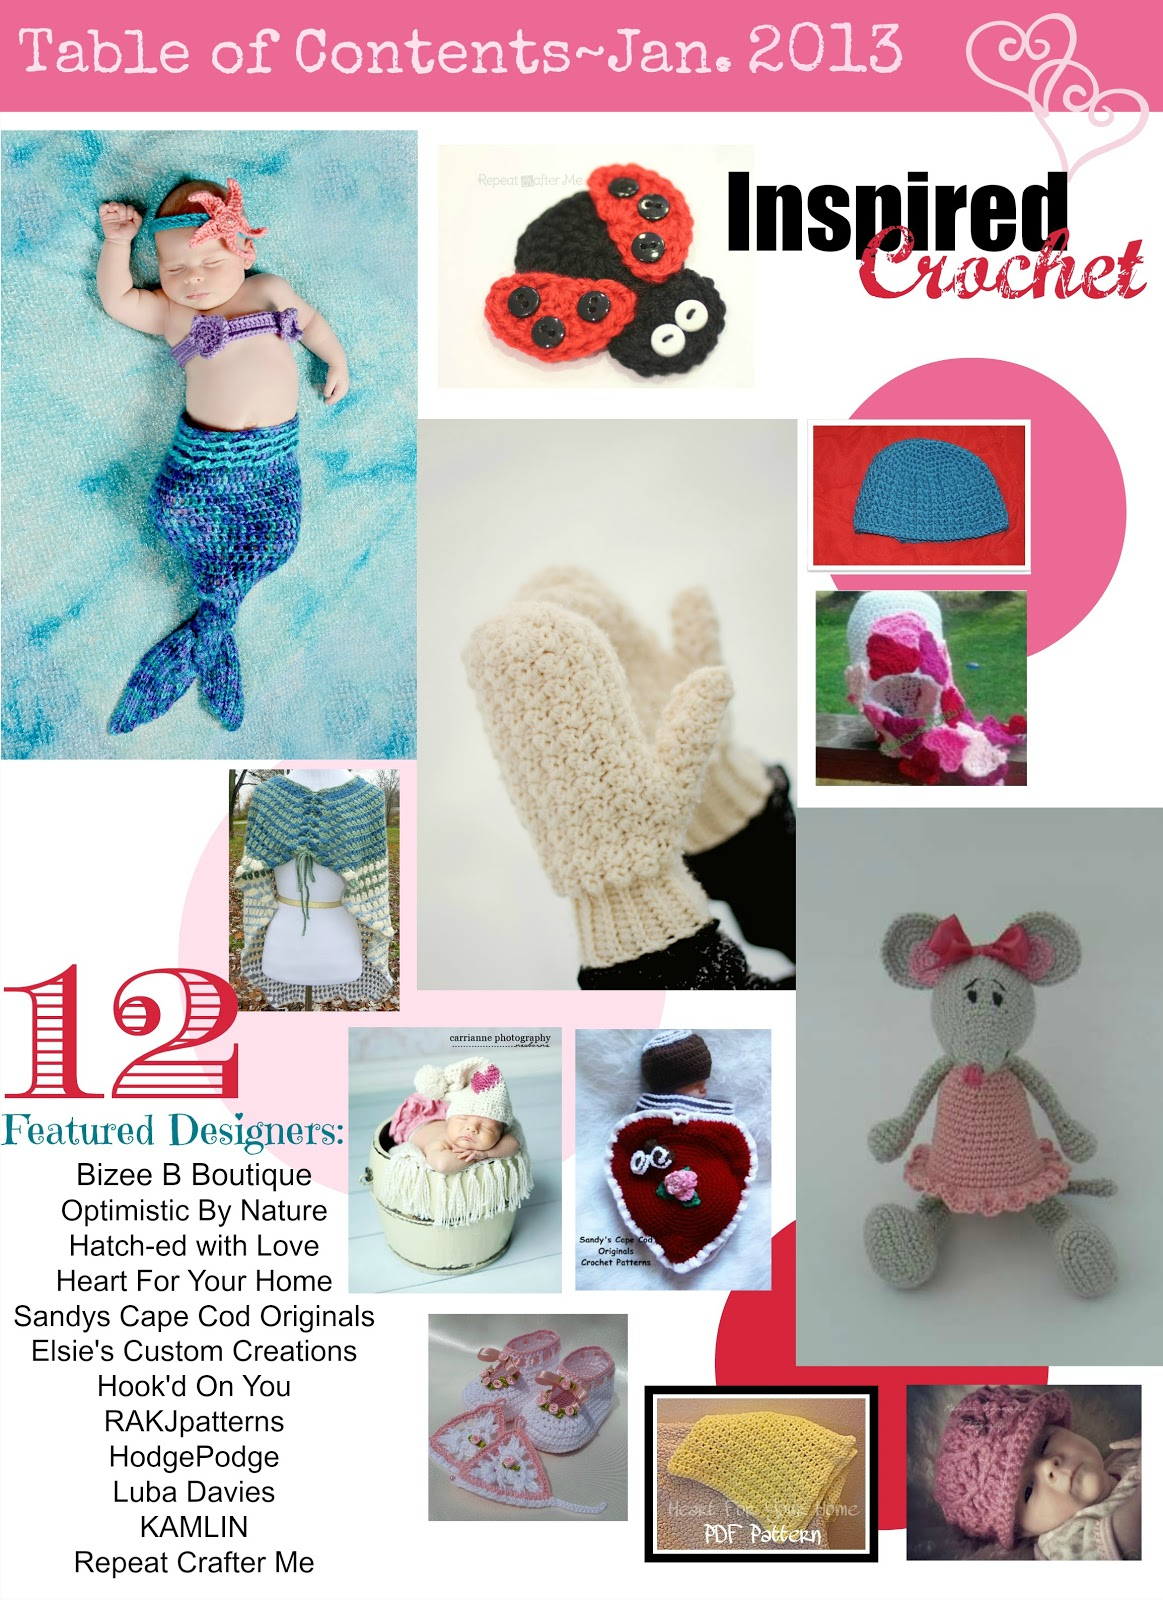 Inspired crochet magazine featured pattern repeat crafter me my pattern is the cute little ladybug appliqu i think it would make an adorable embellishment on a hat or headband but it could also be a magnet bankloansurffo Choice Image